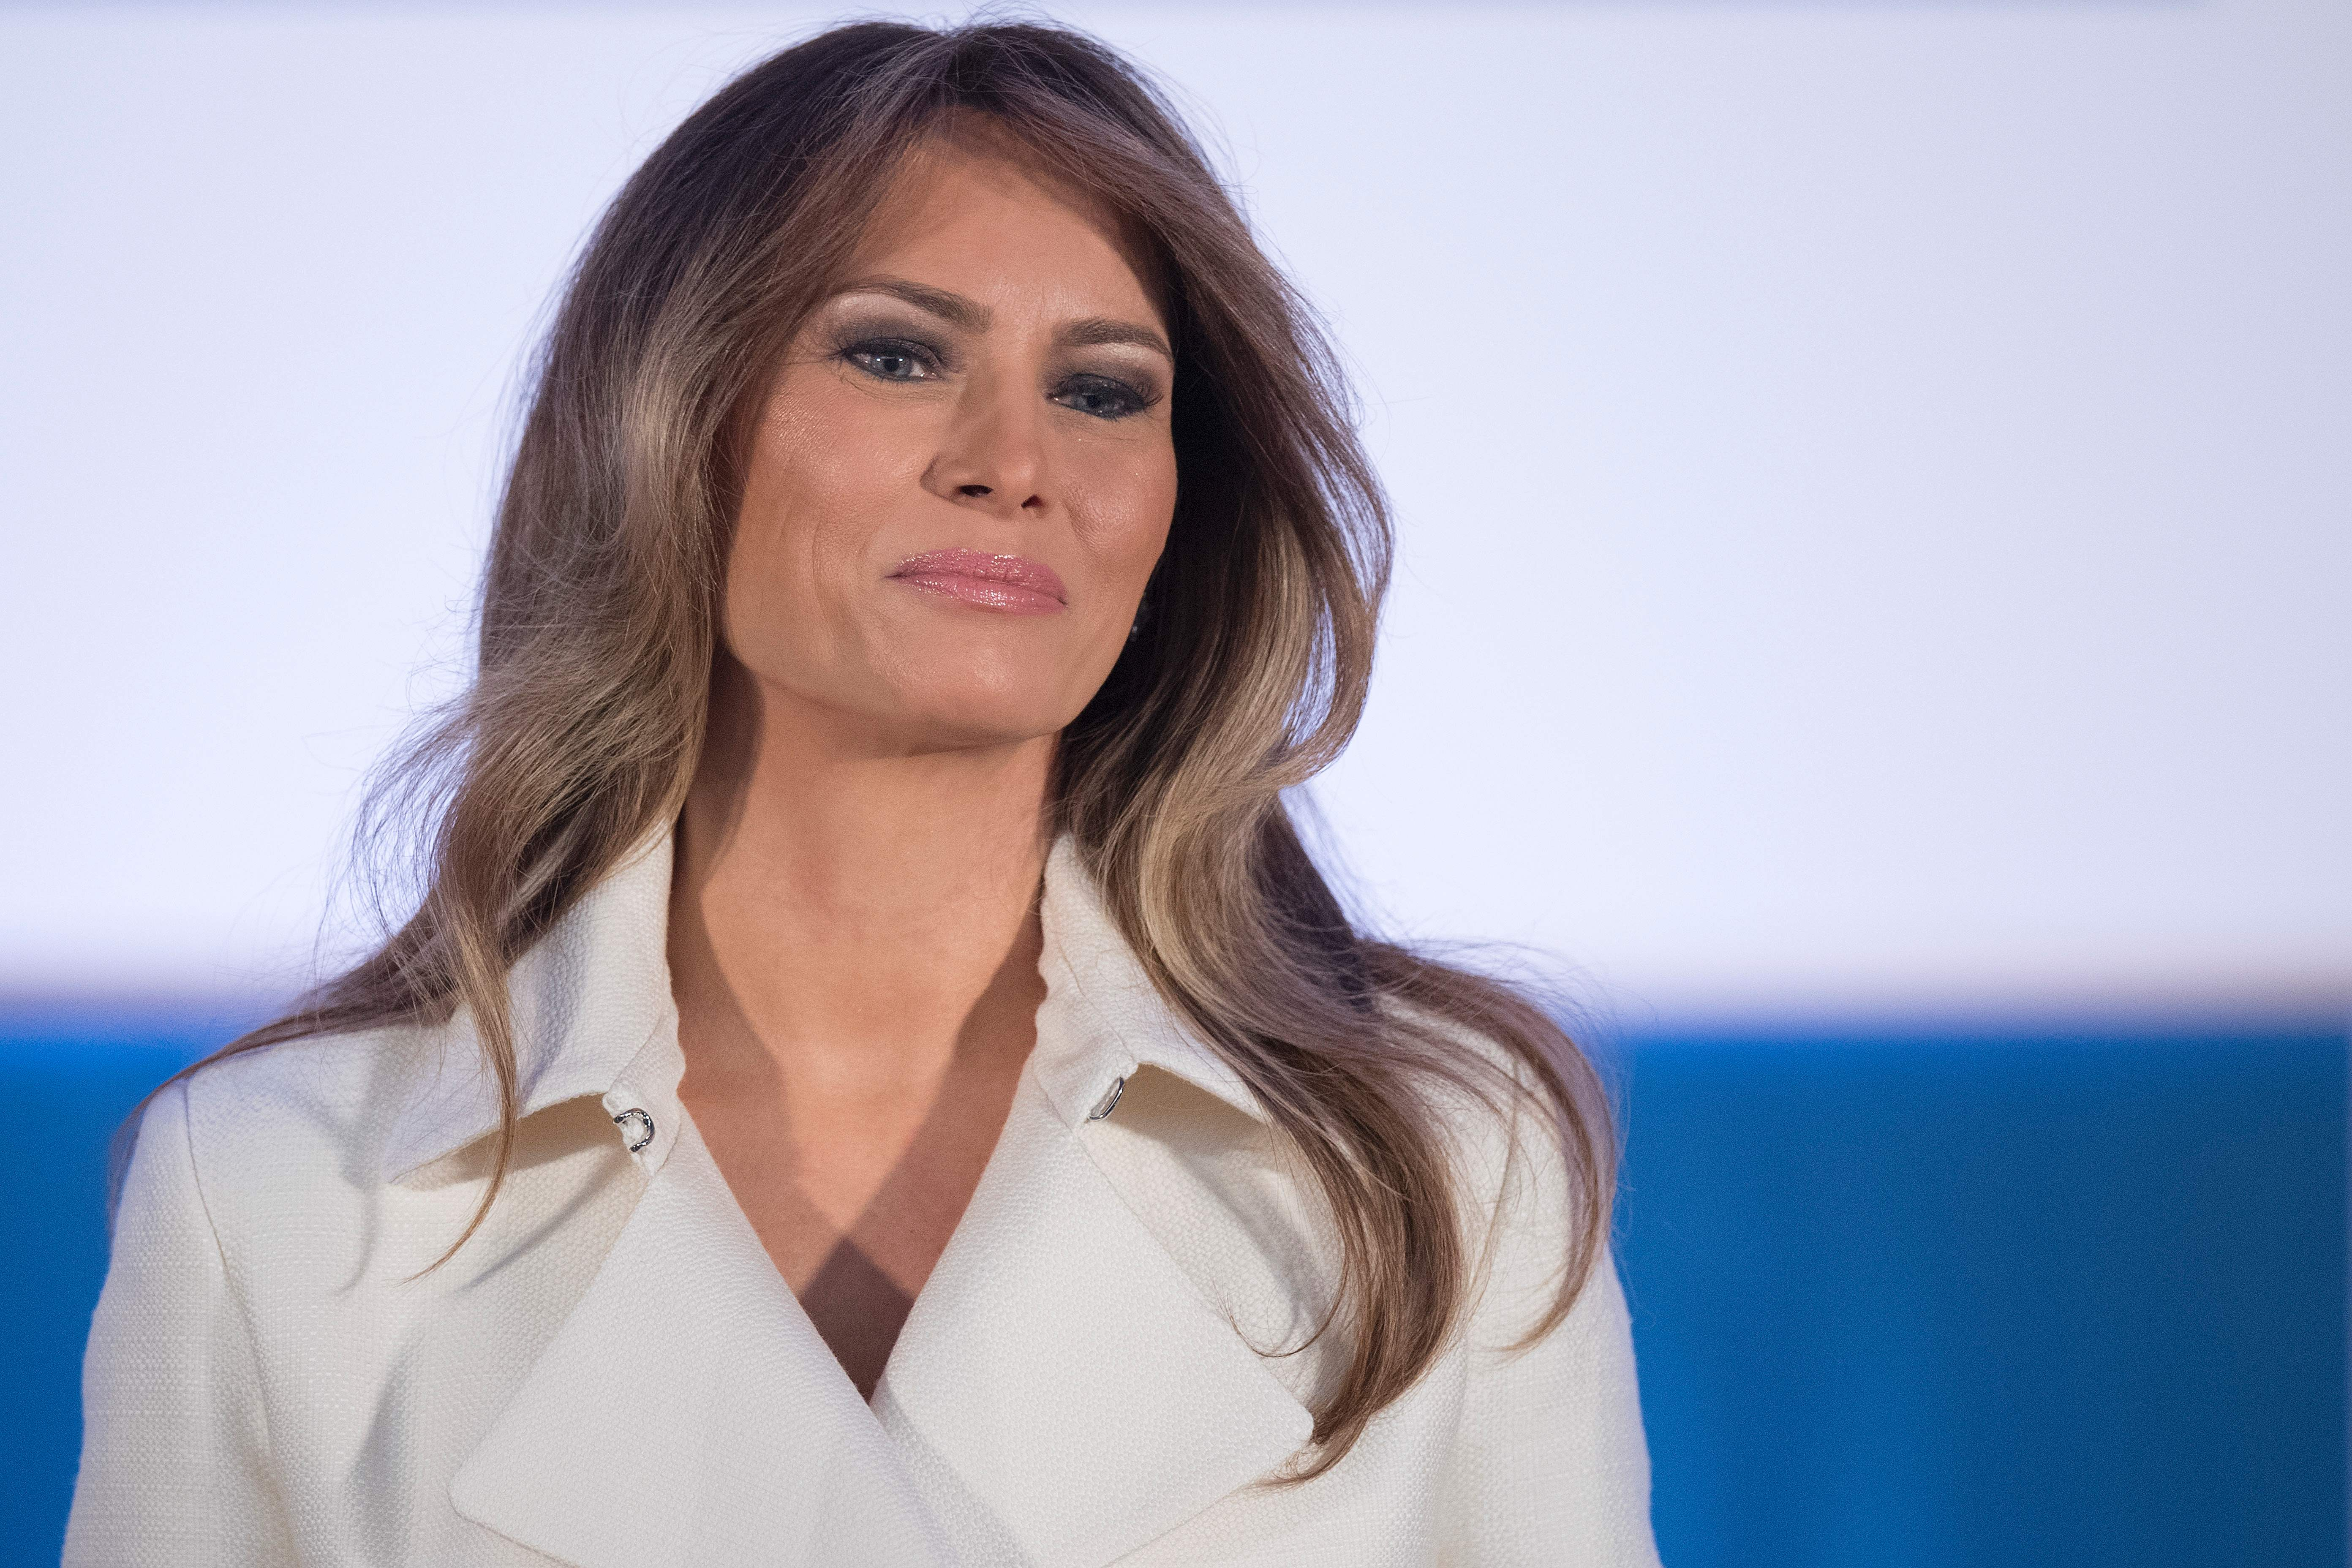 a26e7bc585c6 Melania Trump may be a mostly absent first lady so far